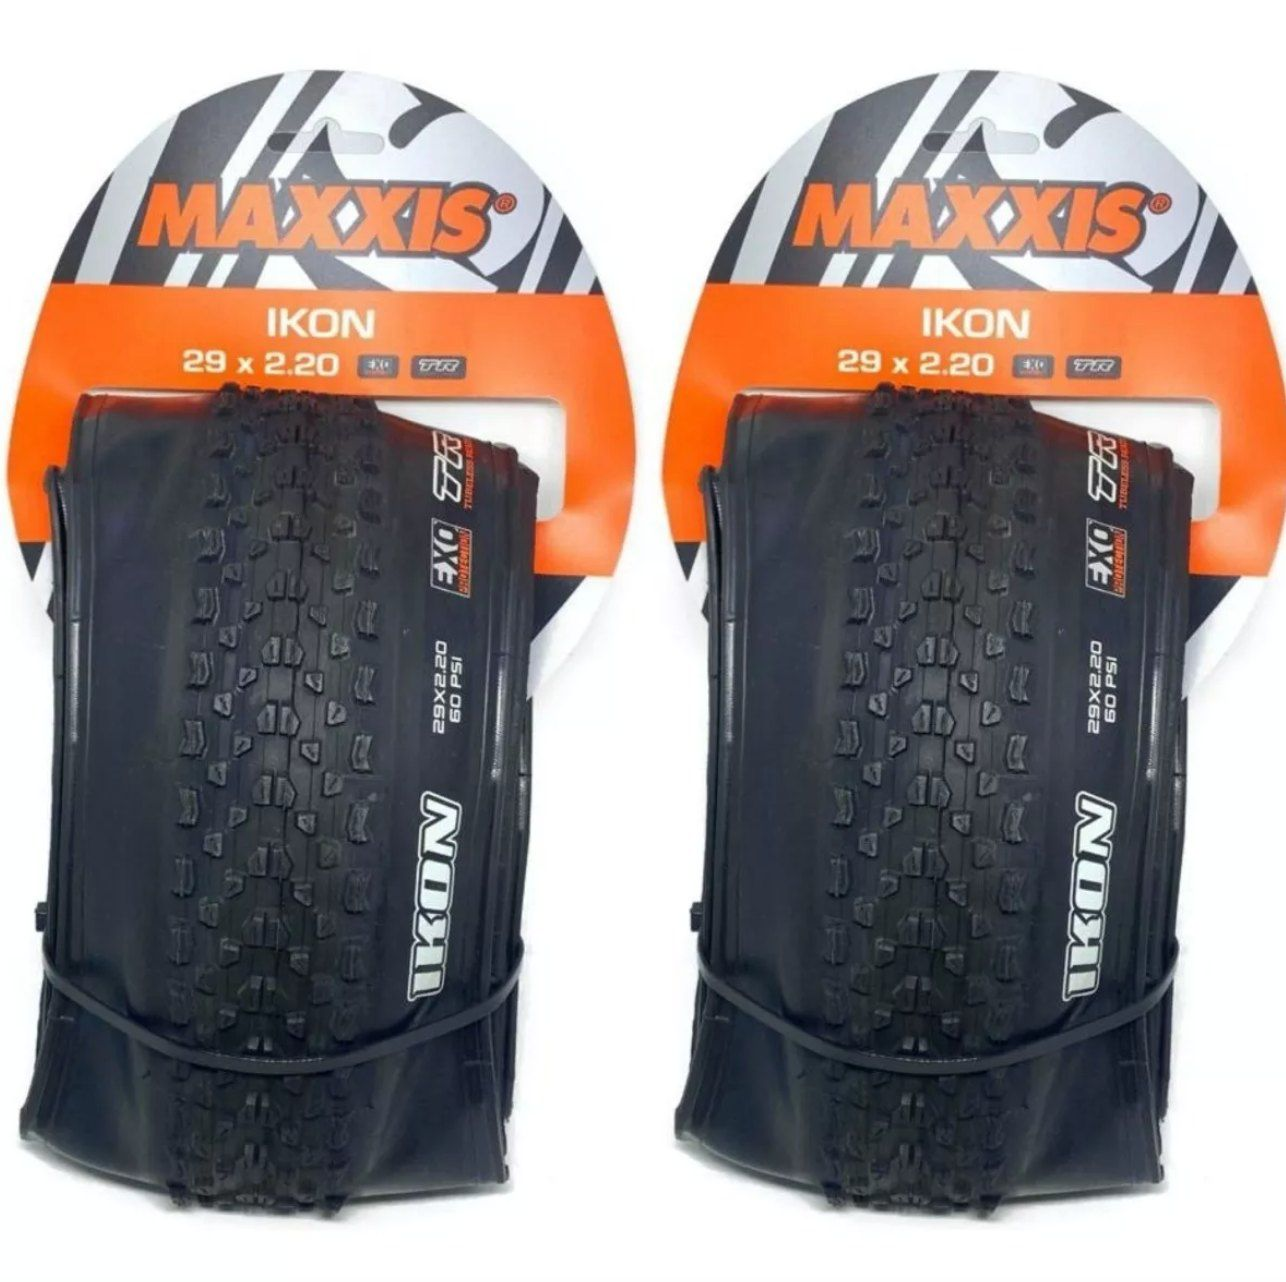 Pneu Maxxis Ikon 29x2.20 Exo Protection Tubeless Ready(2und)